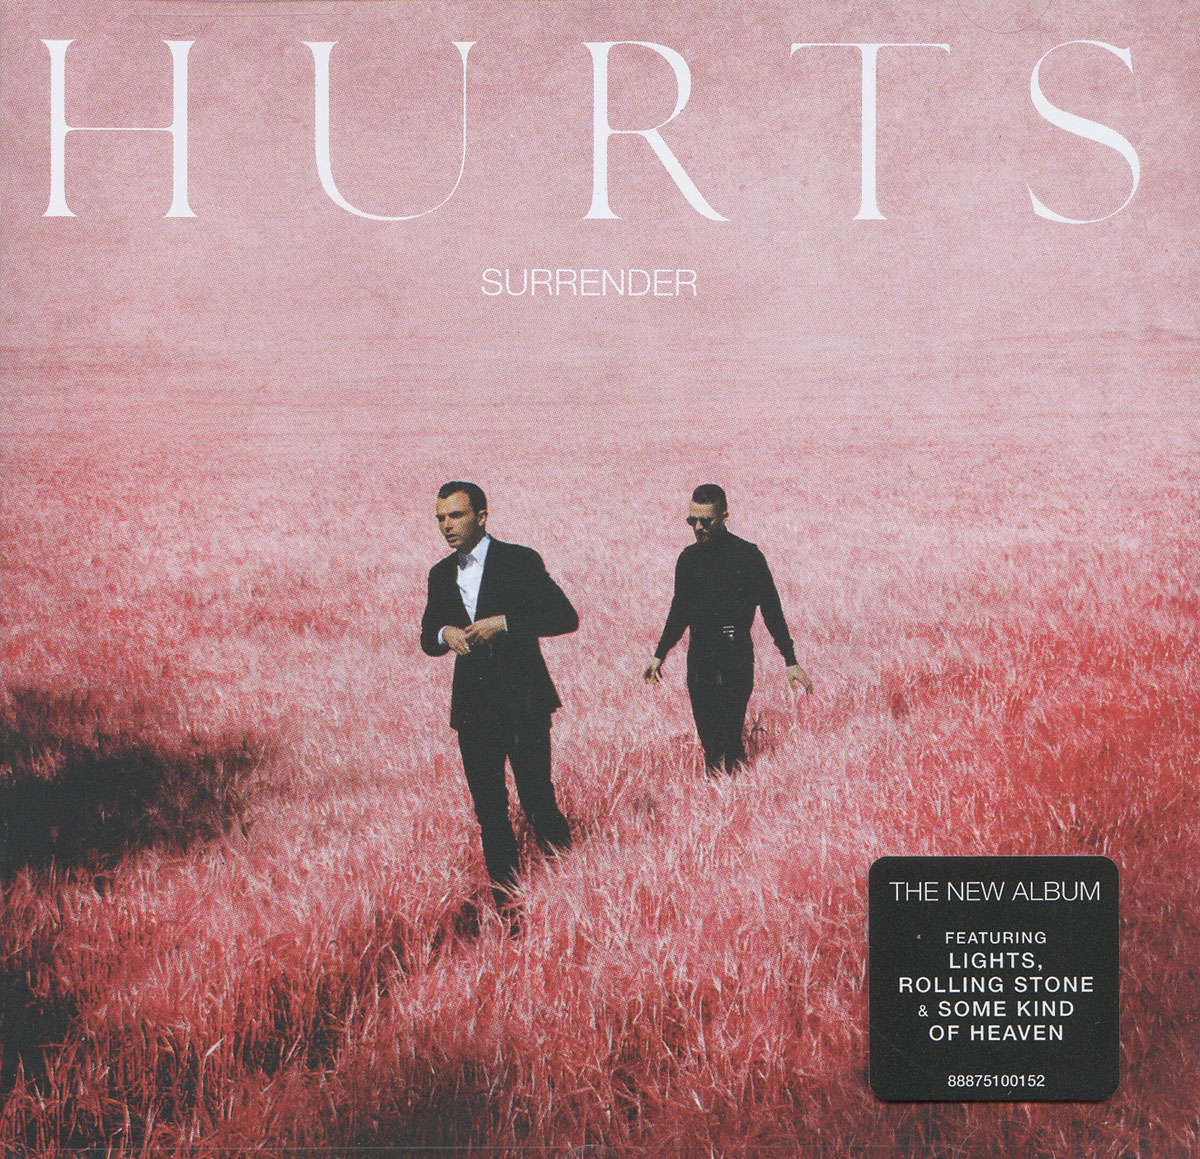 Hurts Hurts. Surrender hurts – desire cd